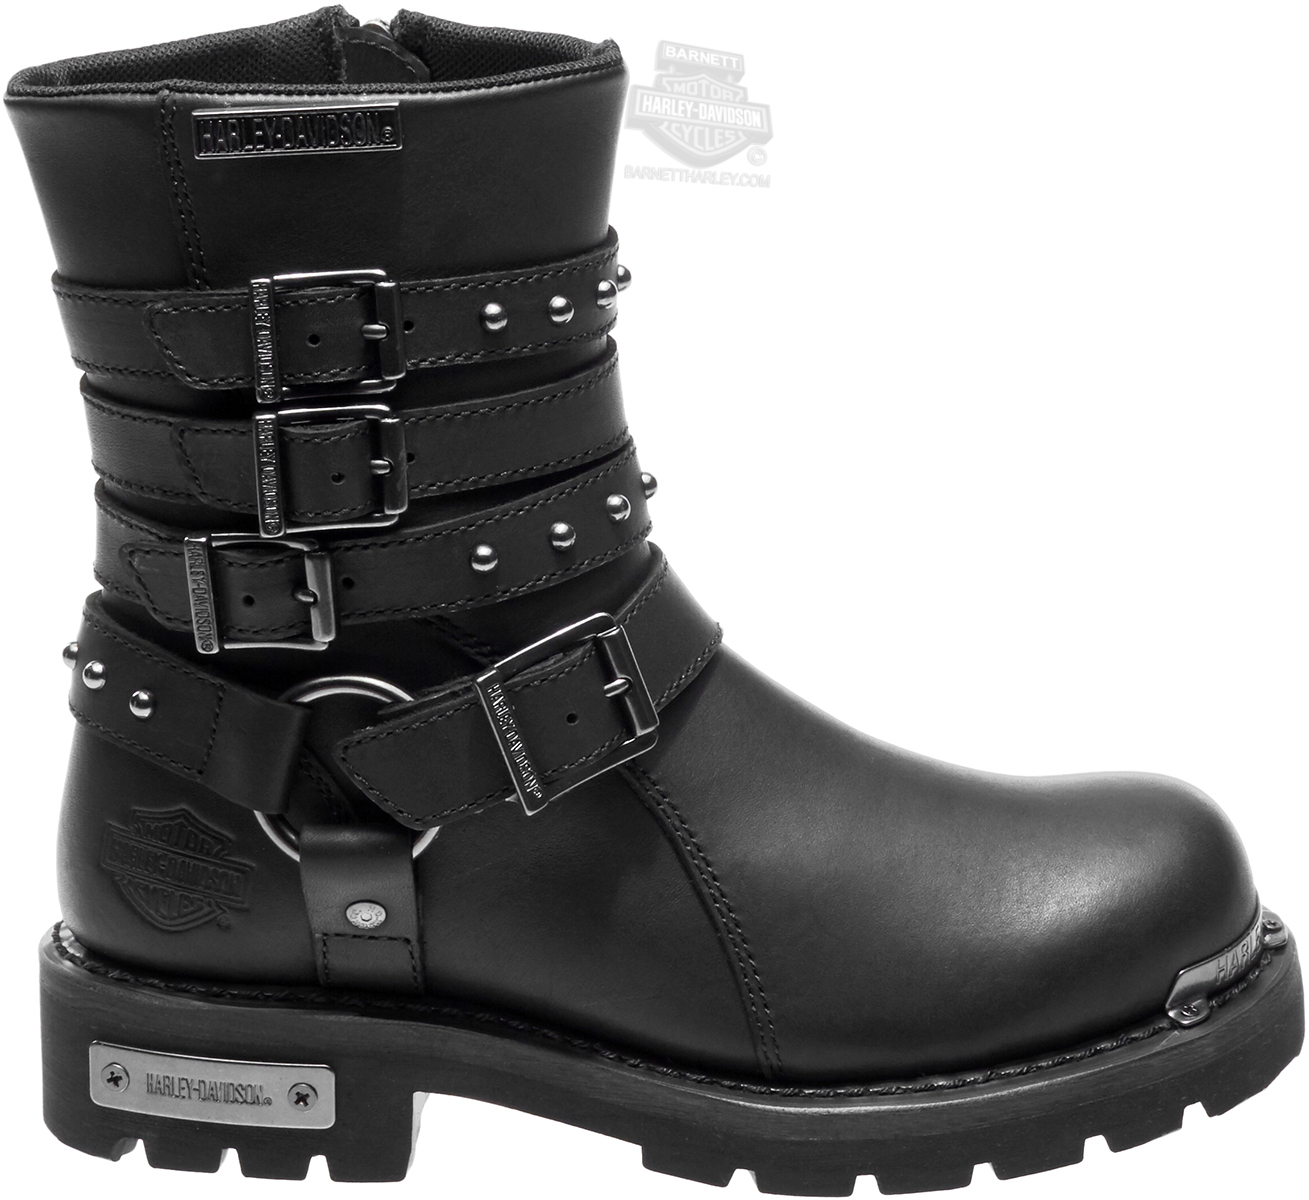 84013 Harley Davidsonr Womens Eddington Black Leather